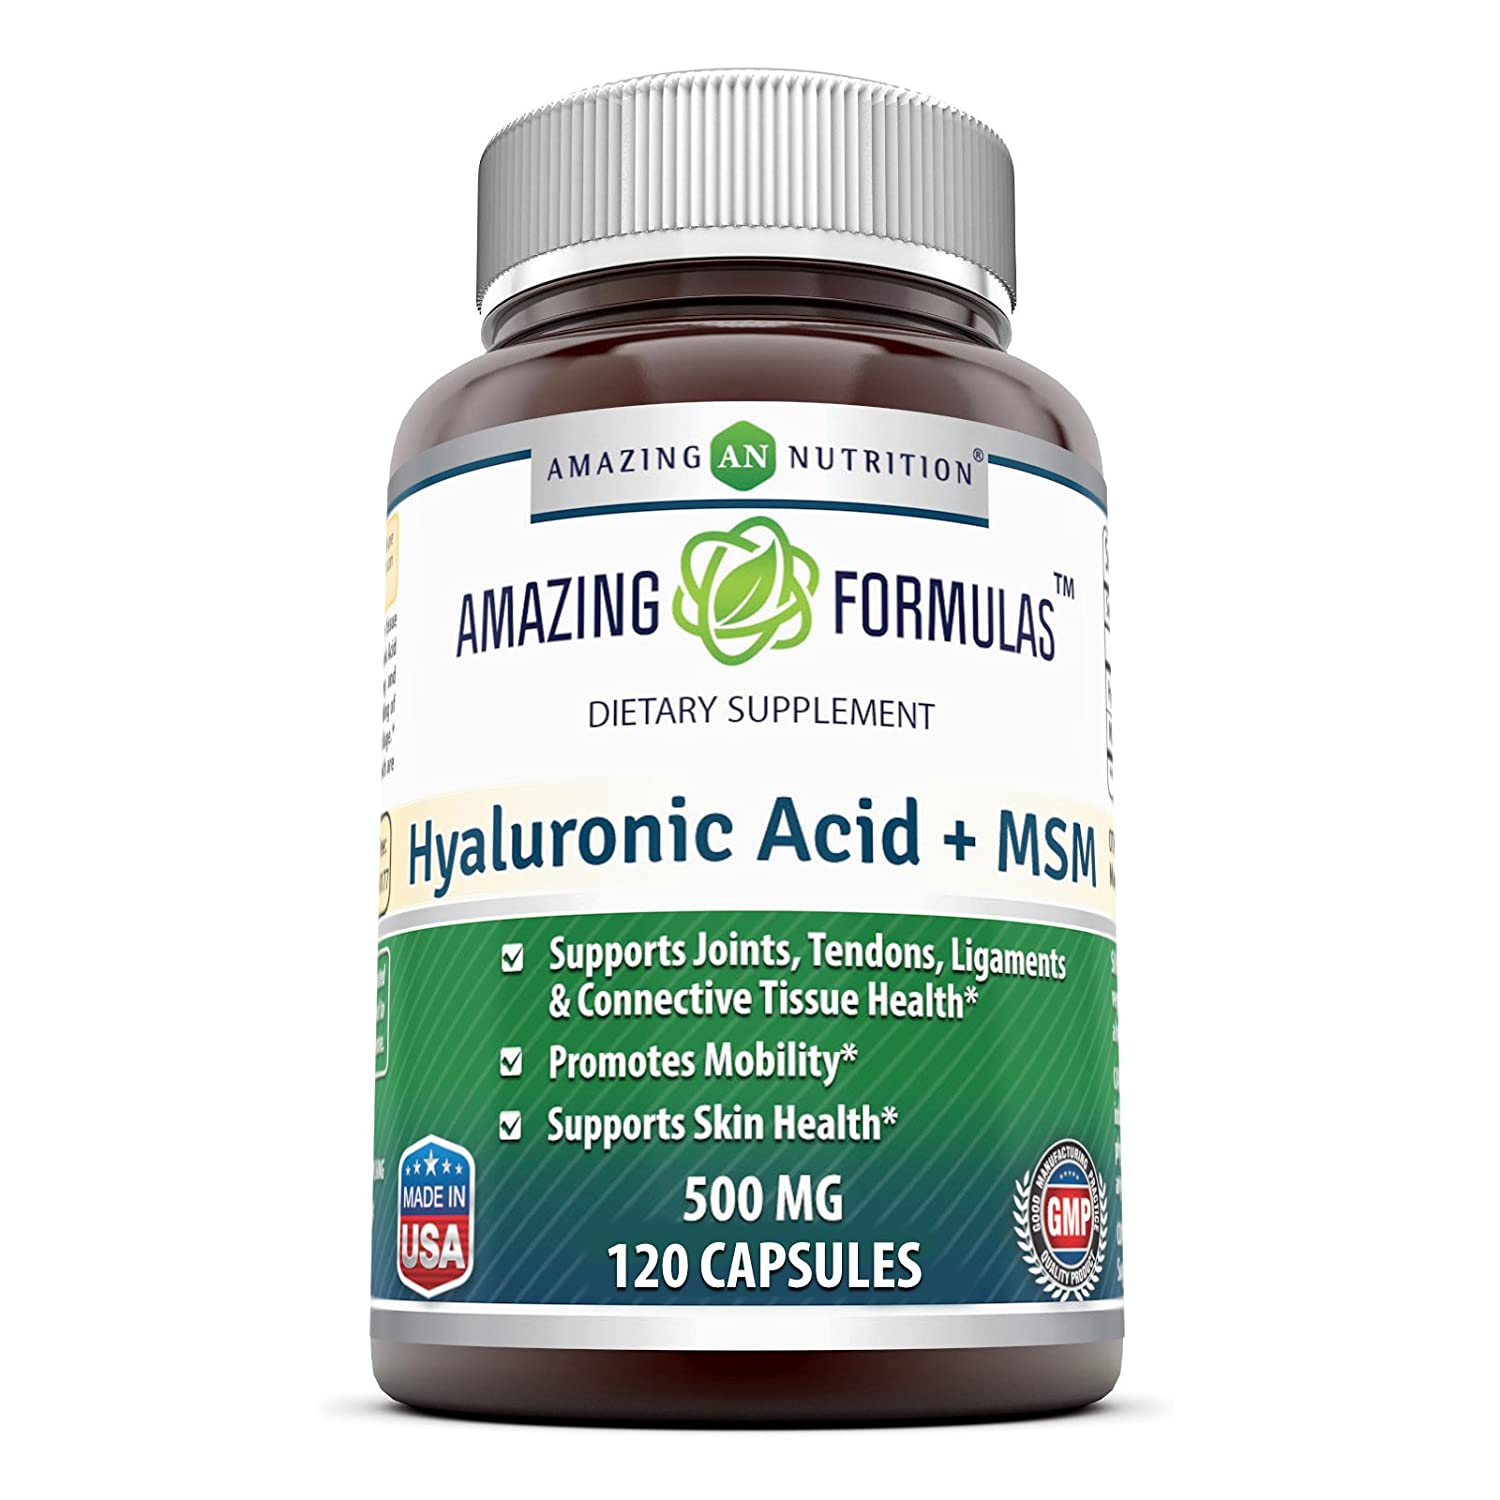 Amazing Nutrition Hyaluronic Acid & MSM Dietary Supplement - 500 Milligrams - 120 Veggie Capsules - Provides Joint, Tendon & Ligament Support - Promotes Flexibility – Skin Health Supplements B01HQC9Q1S